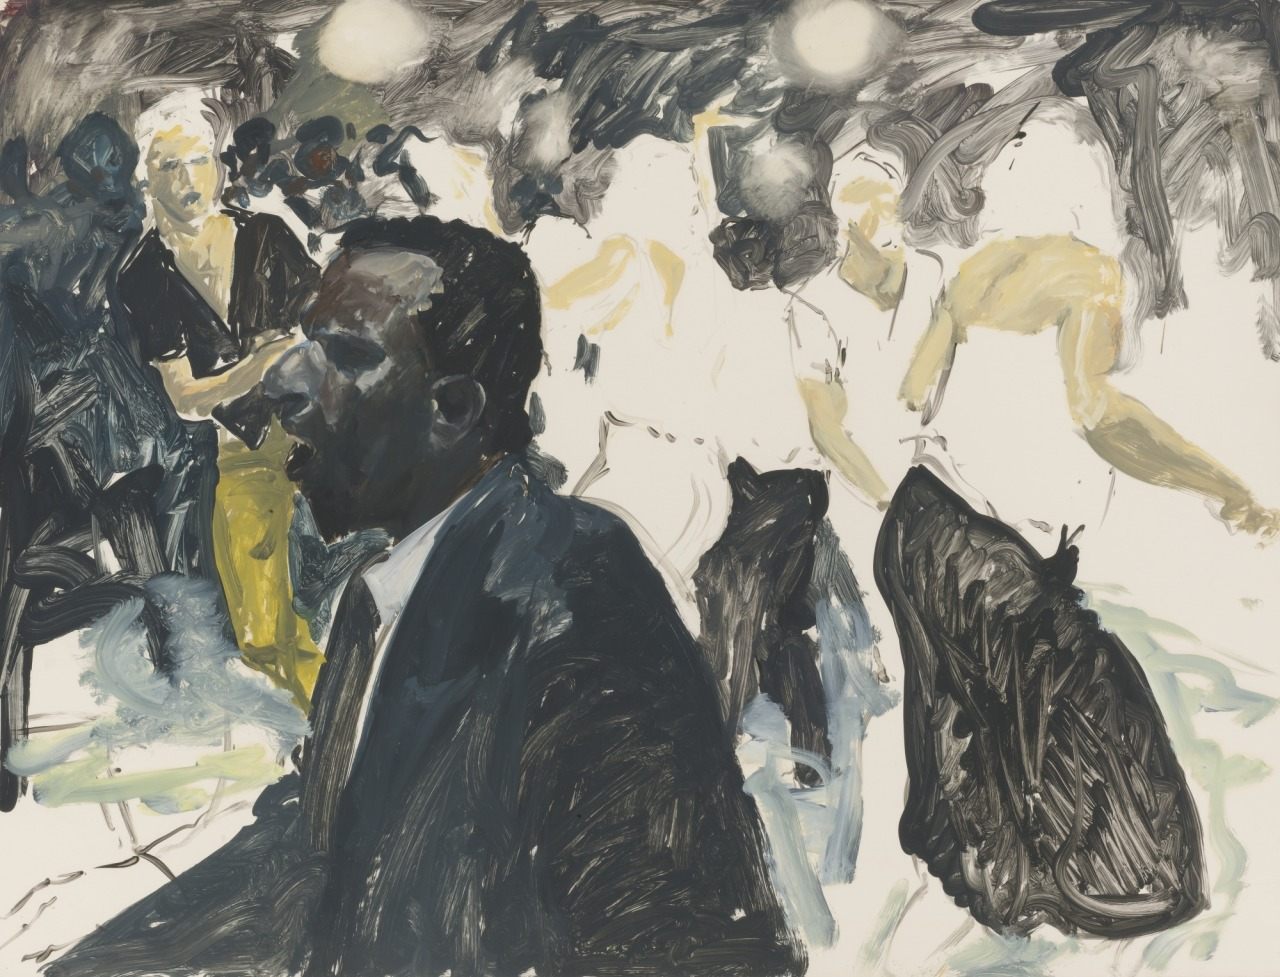 thunderstruck9:Eric Fischl (American, b. 1948), Untitled, 1984. Oil on paper, 35 x 46 in.